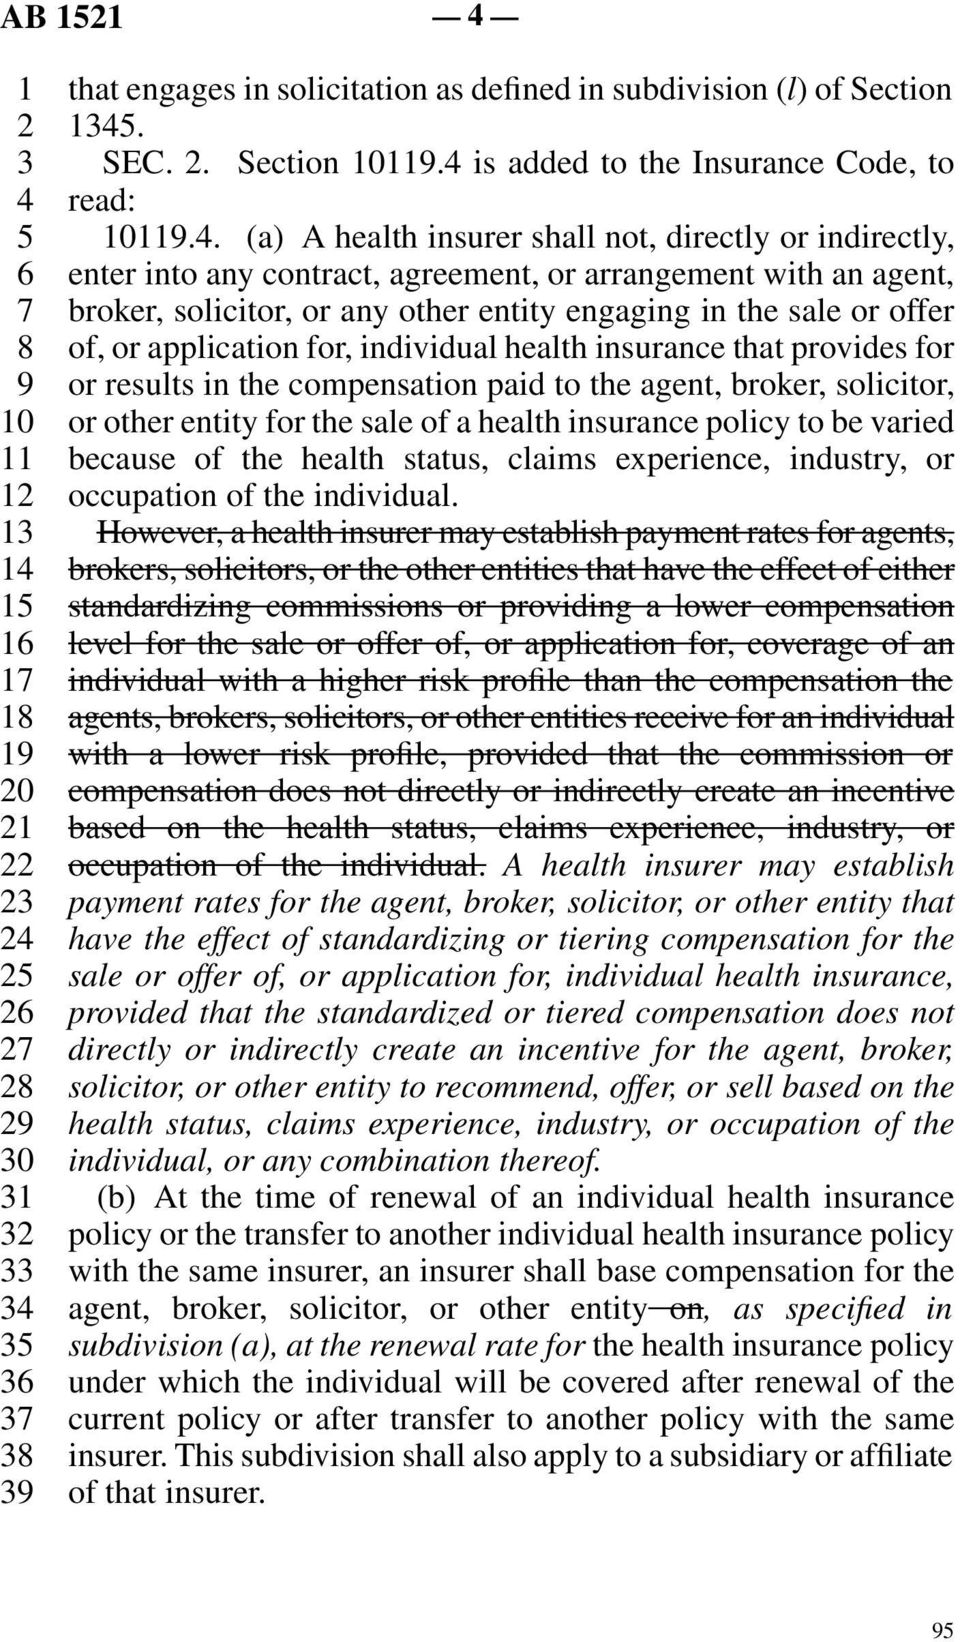 application for, individual health insurance that provides for or results in the compensation paid to the agent, broker, solicitor, or other entity for the sale of a health insurance policy to be